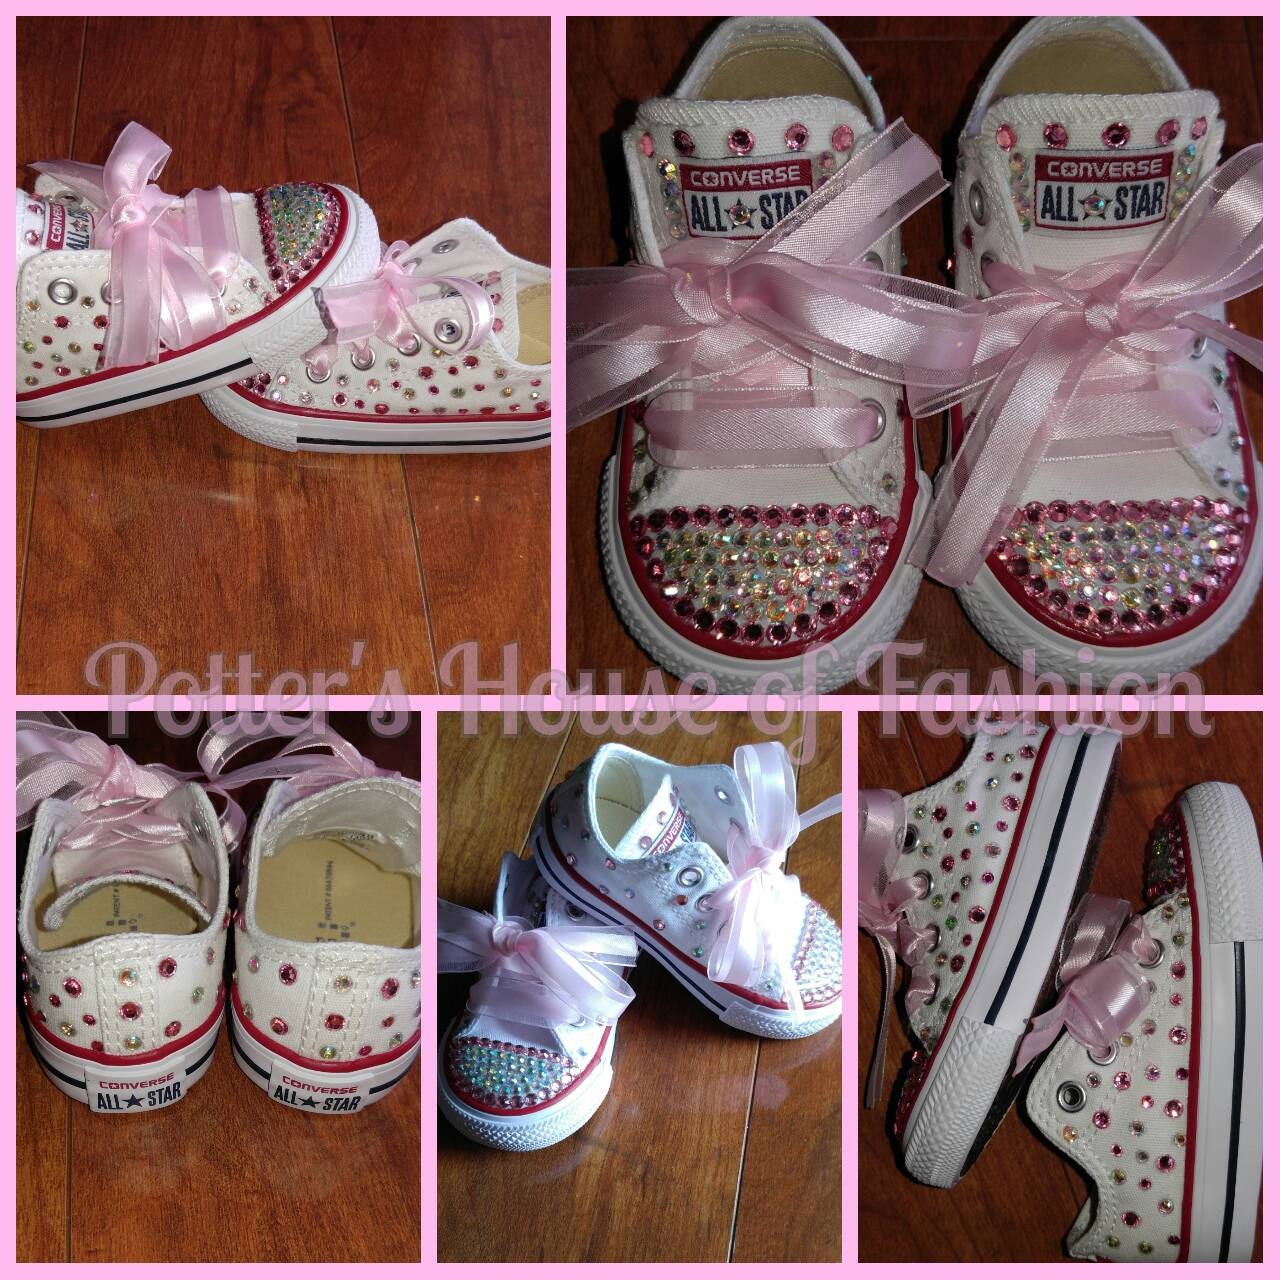 d957d4b060a5b Girl's bling Converse Chuck Taylor shoes! Great for special occasion,  wedding, birthday